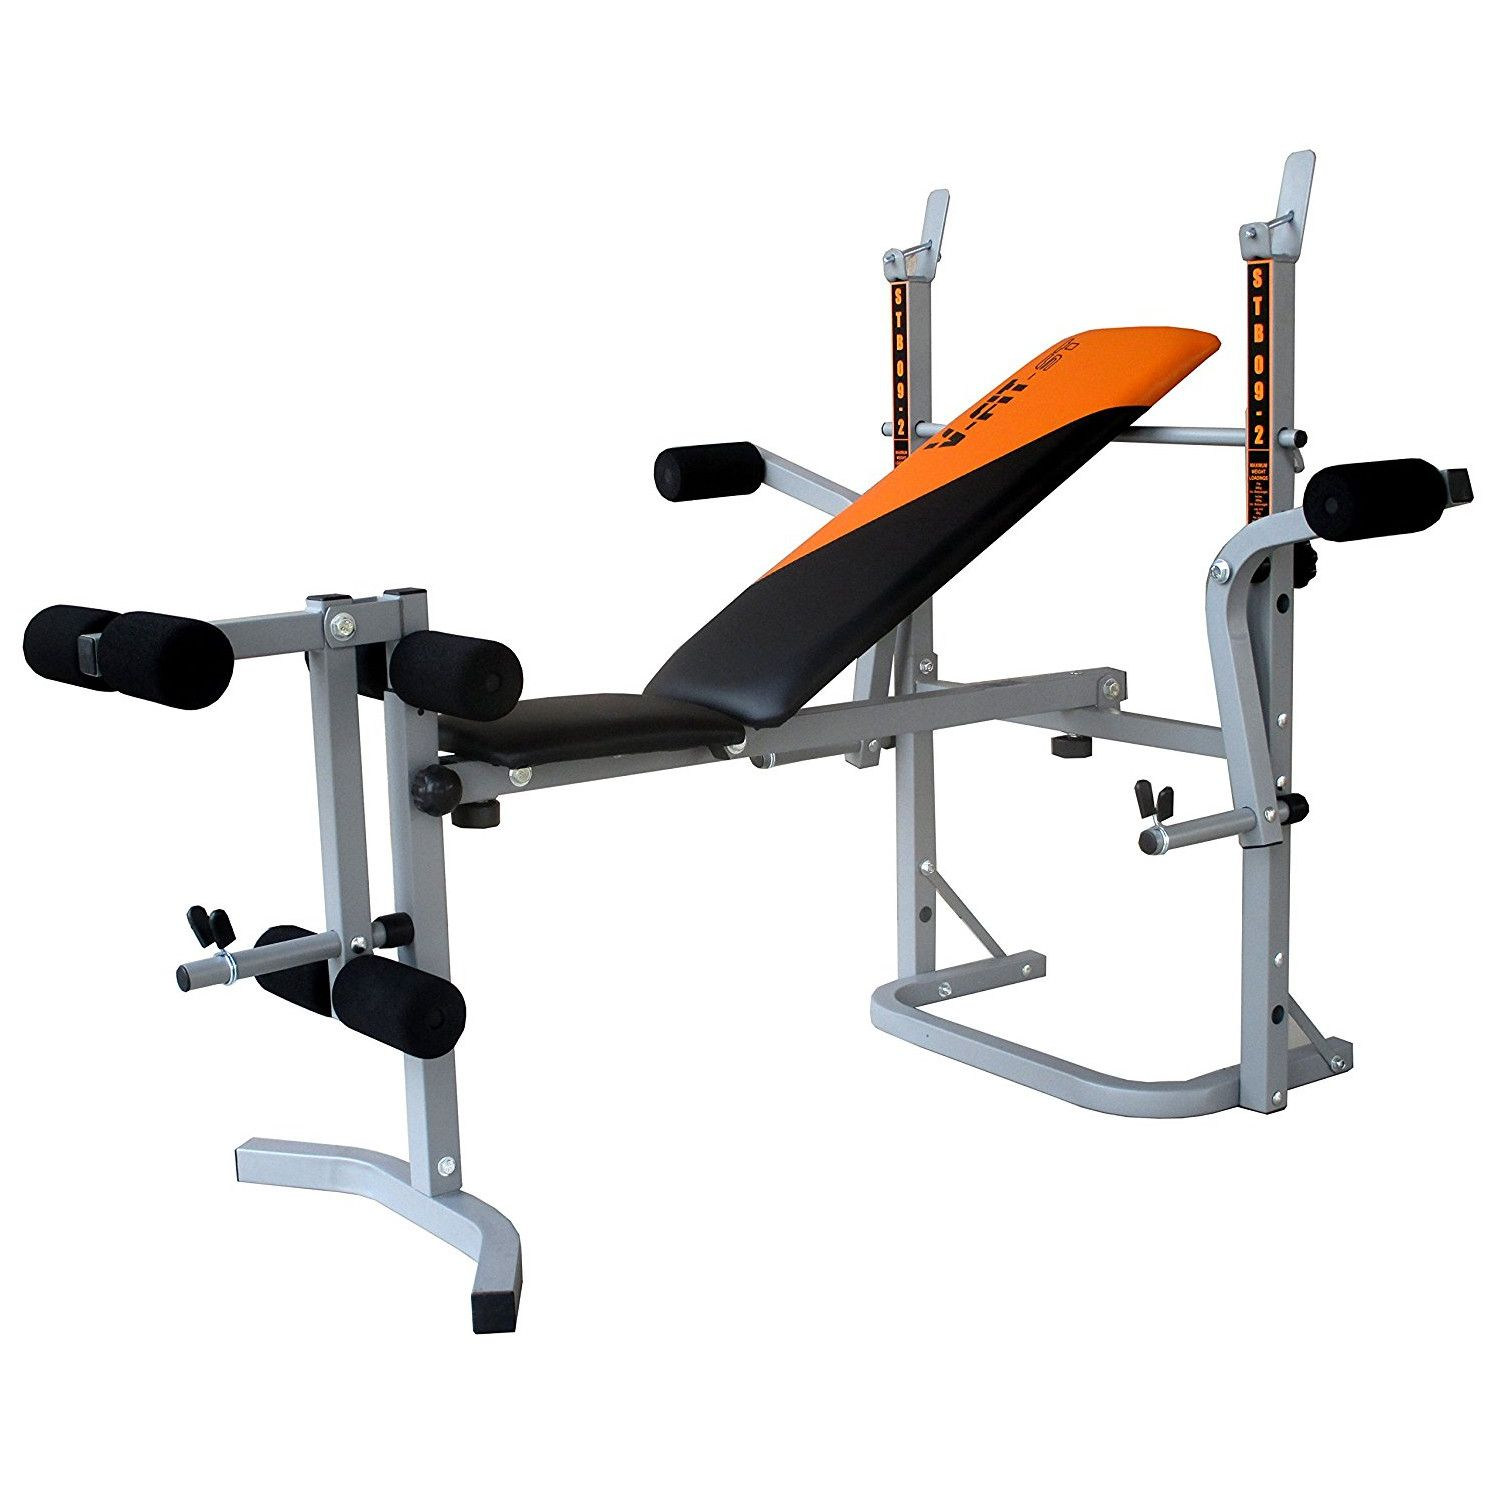 V Fit Stb 09 2 Folding Weight Bench Sweatband Com